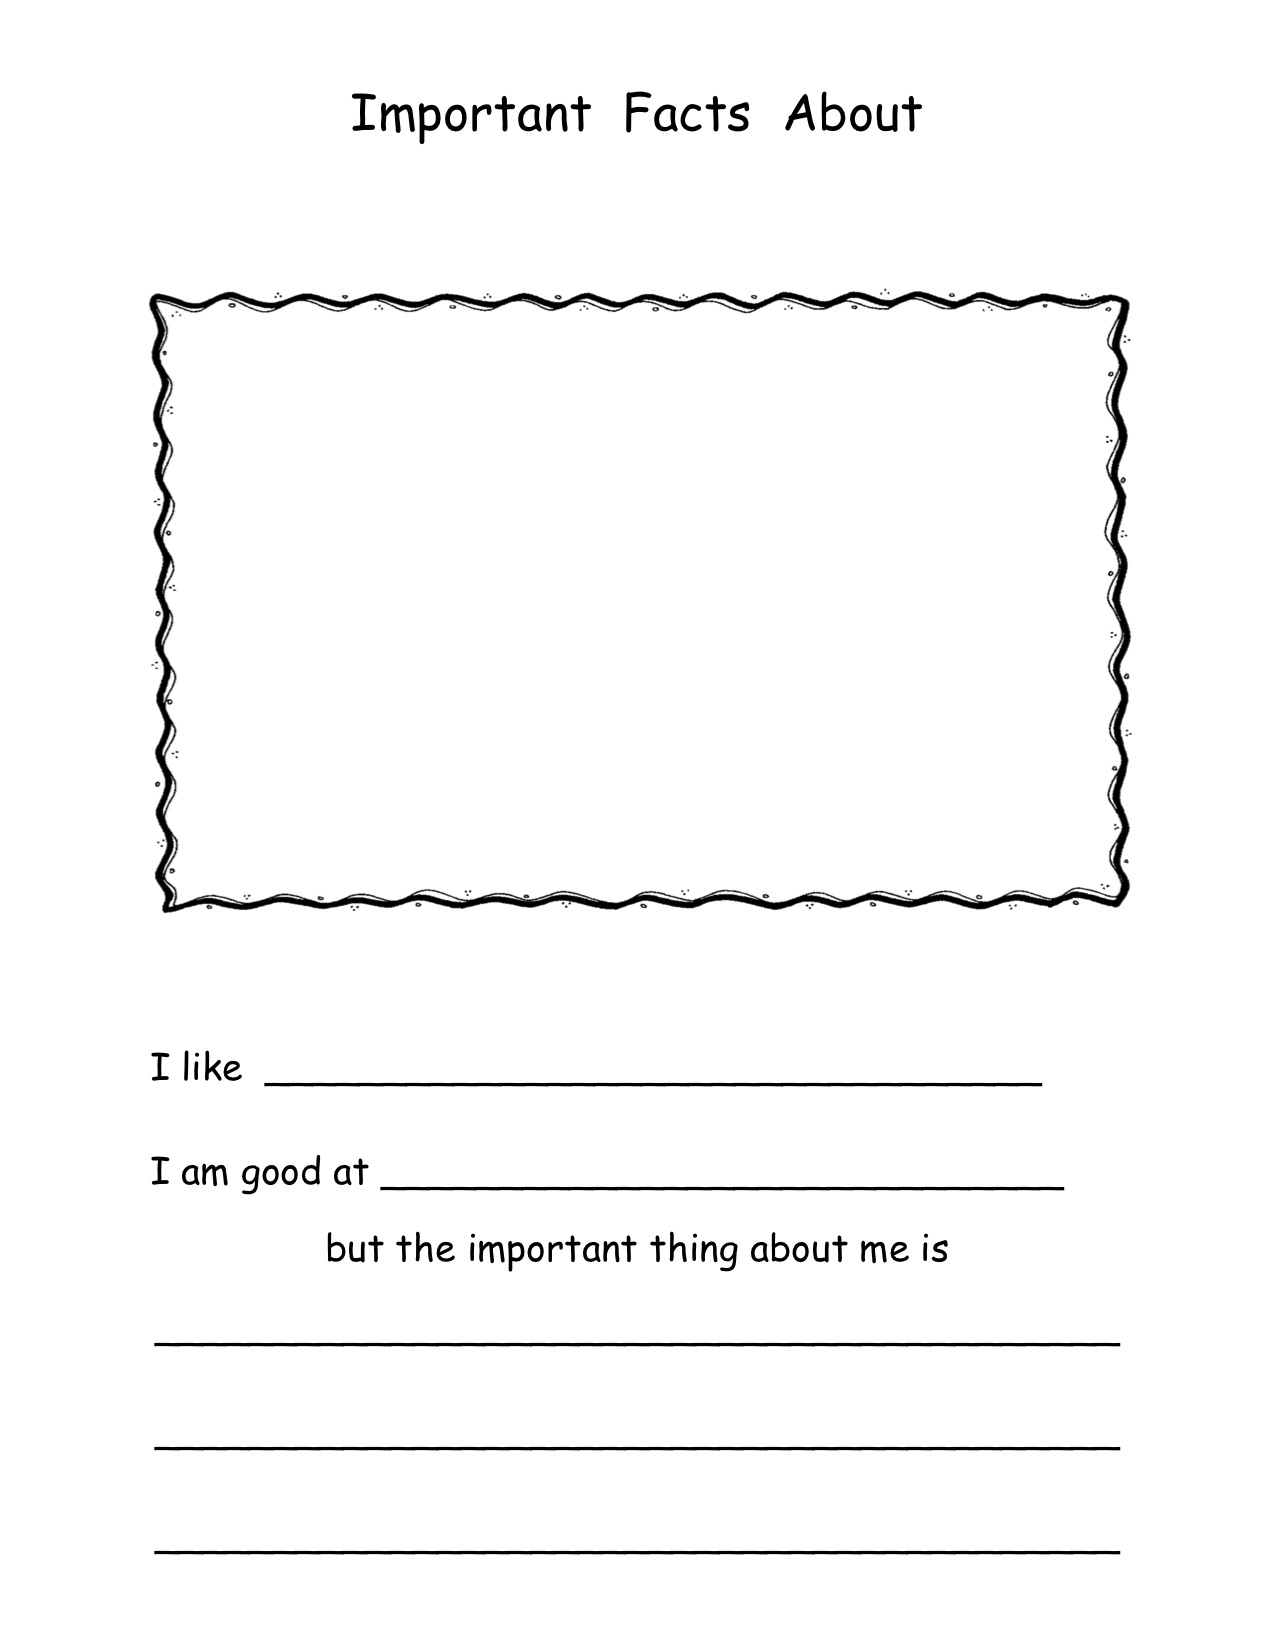 14 Best Images Of Things About Me Worksheet